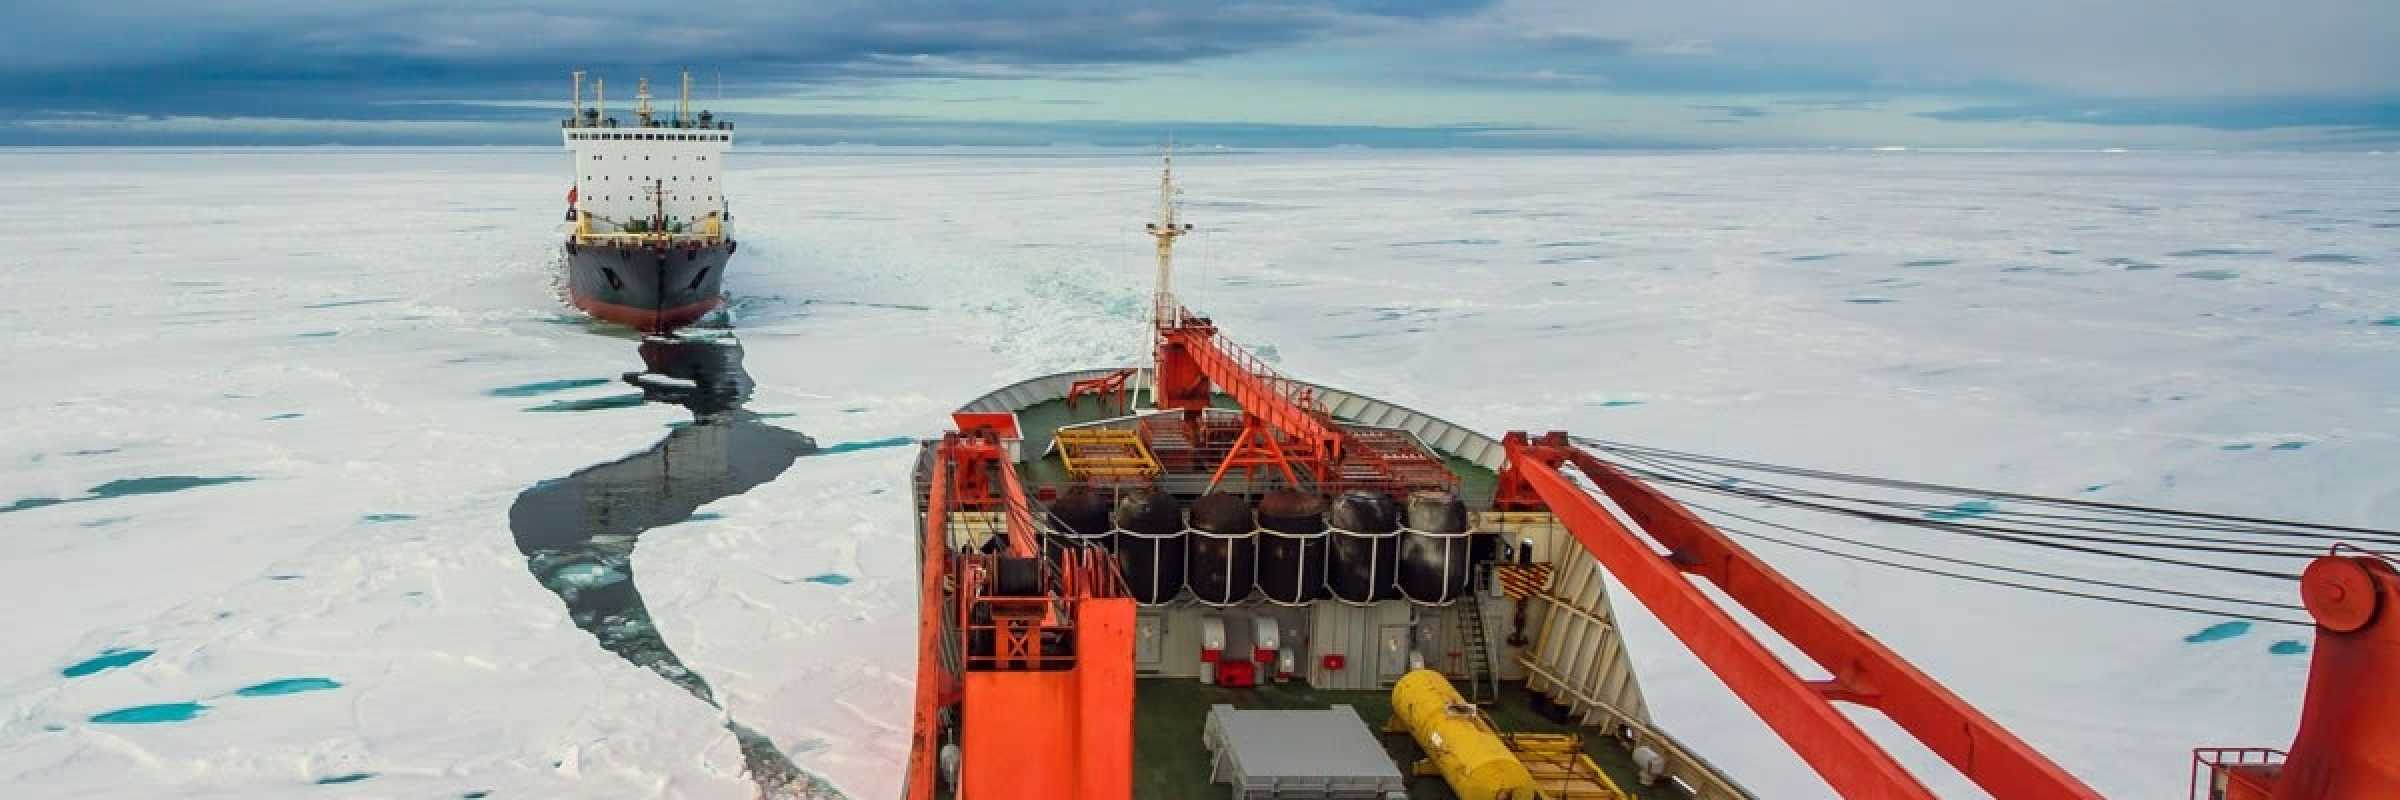 New web tool to help put IMO's Polar Code for ships into practise